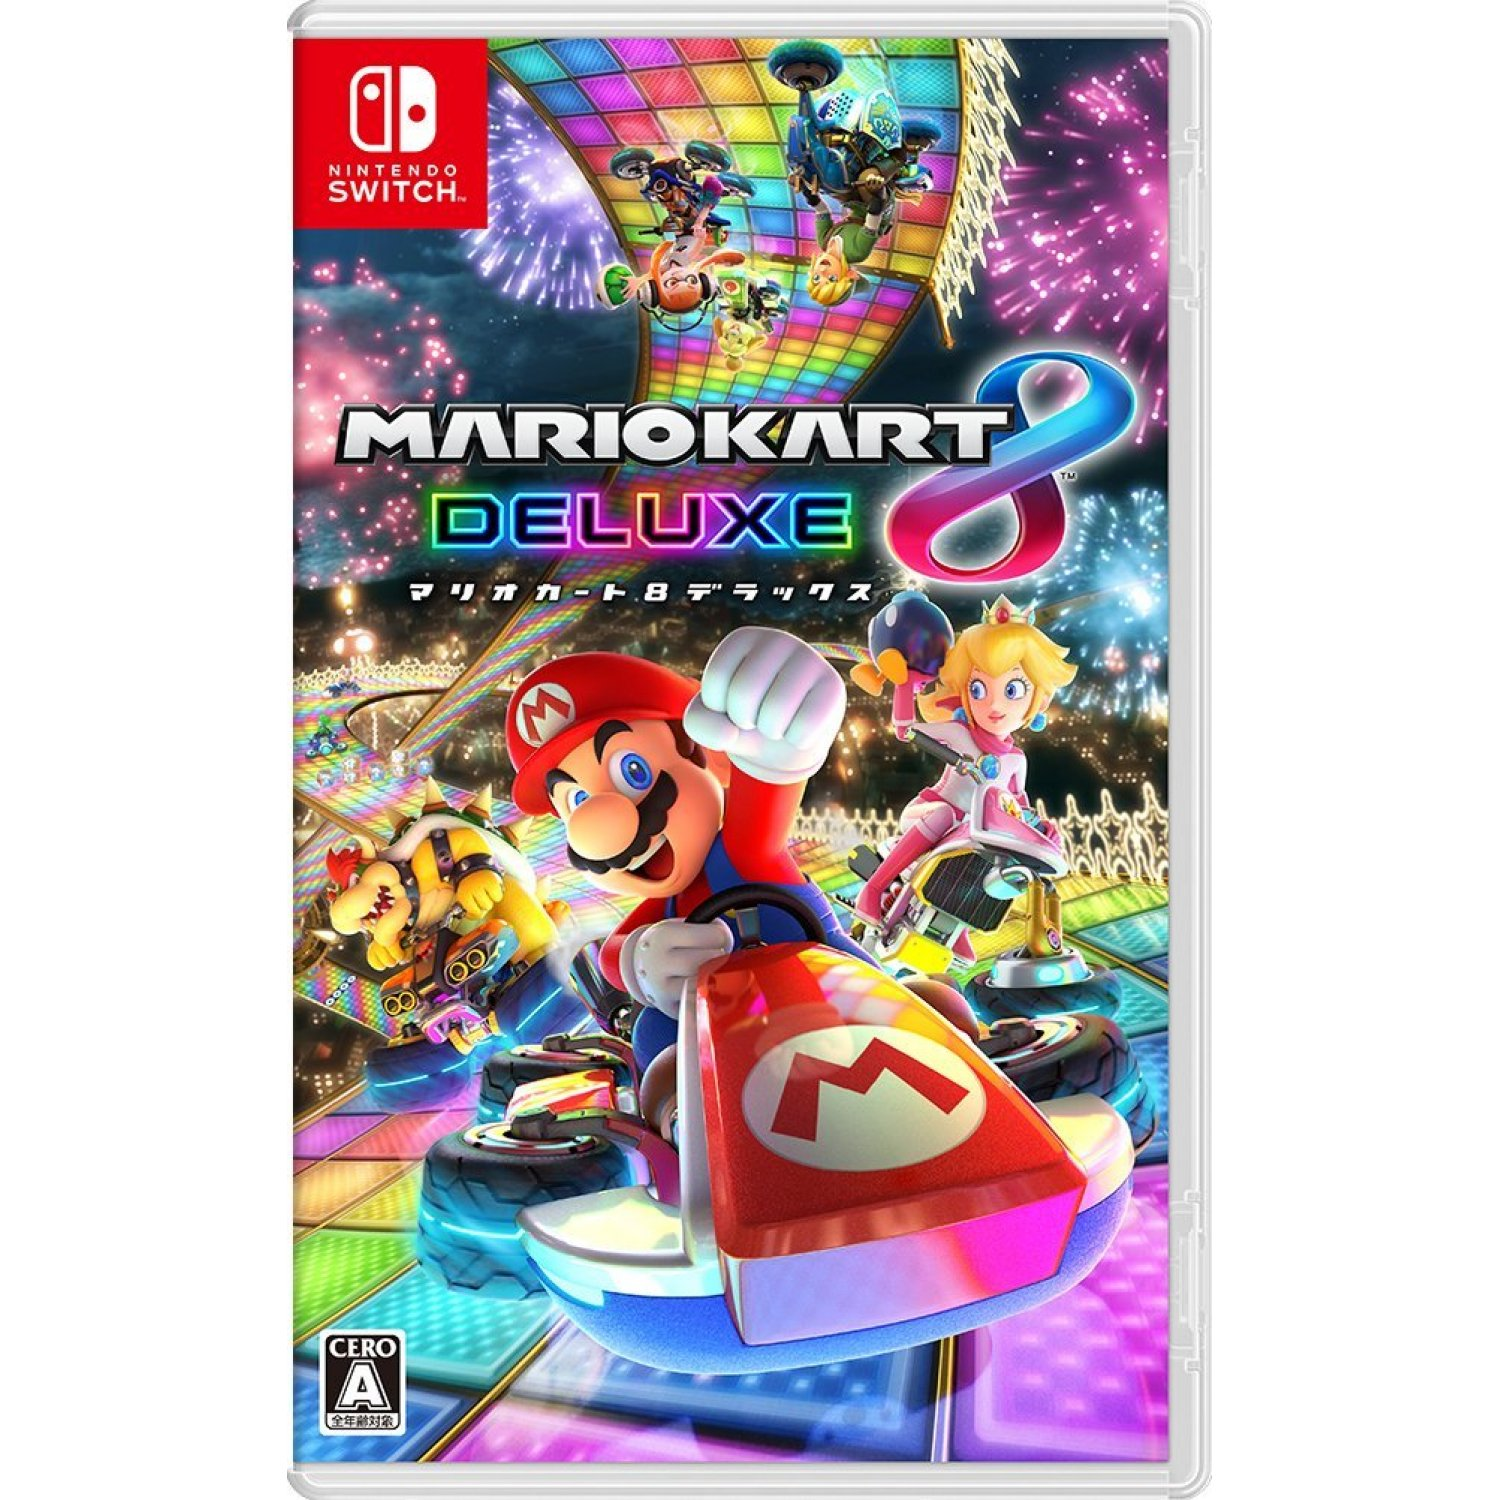 Nintendo Switch : Mario Kart 8 (JP) English